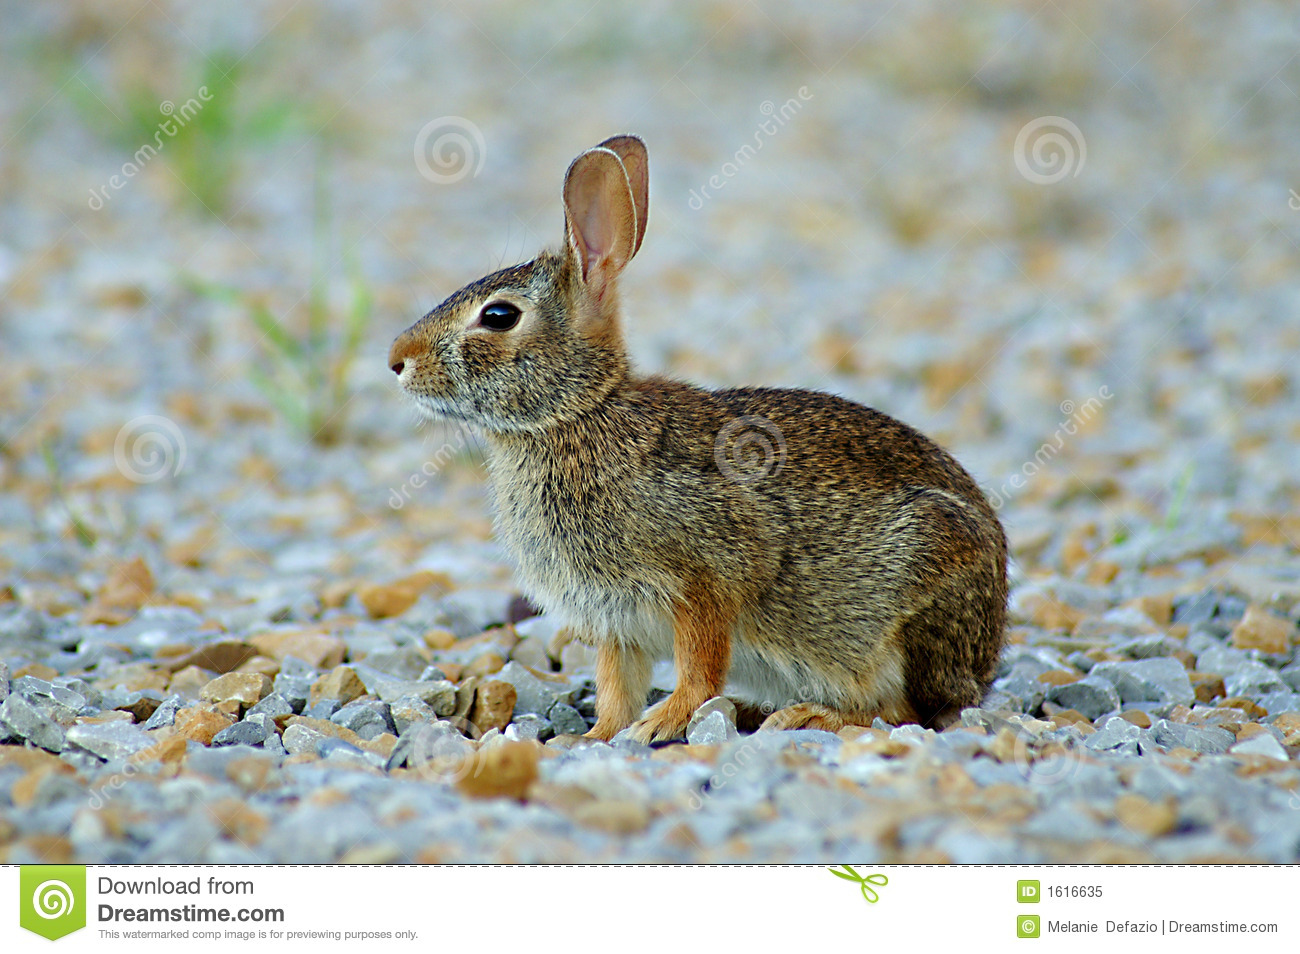 Royalty Free Stock Photo: Brown bunny: dreamstime.com/royalty-free-stock-photo-brown-bunny-image1616635